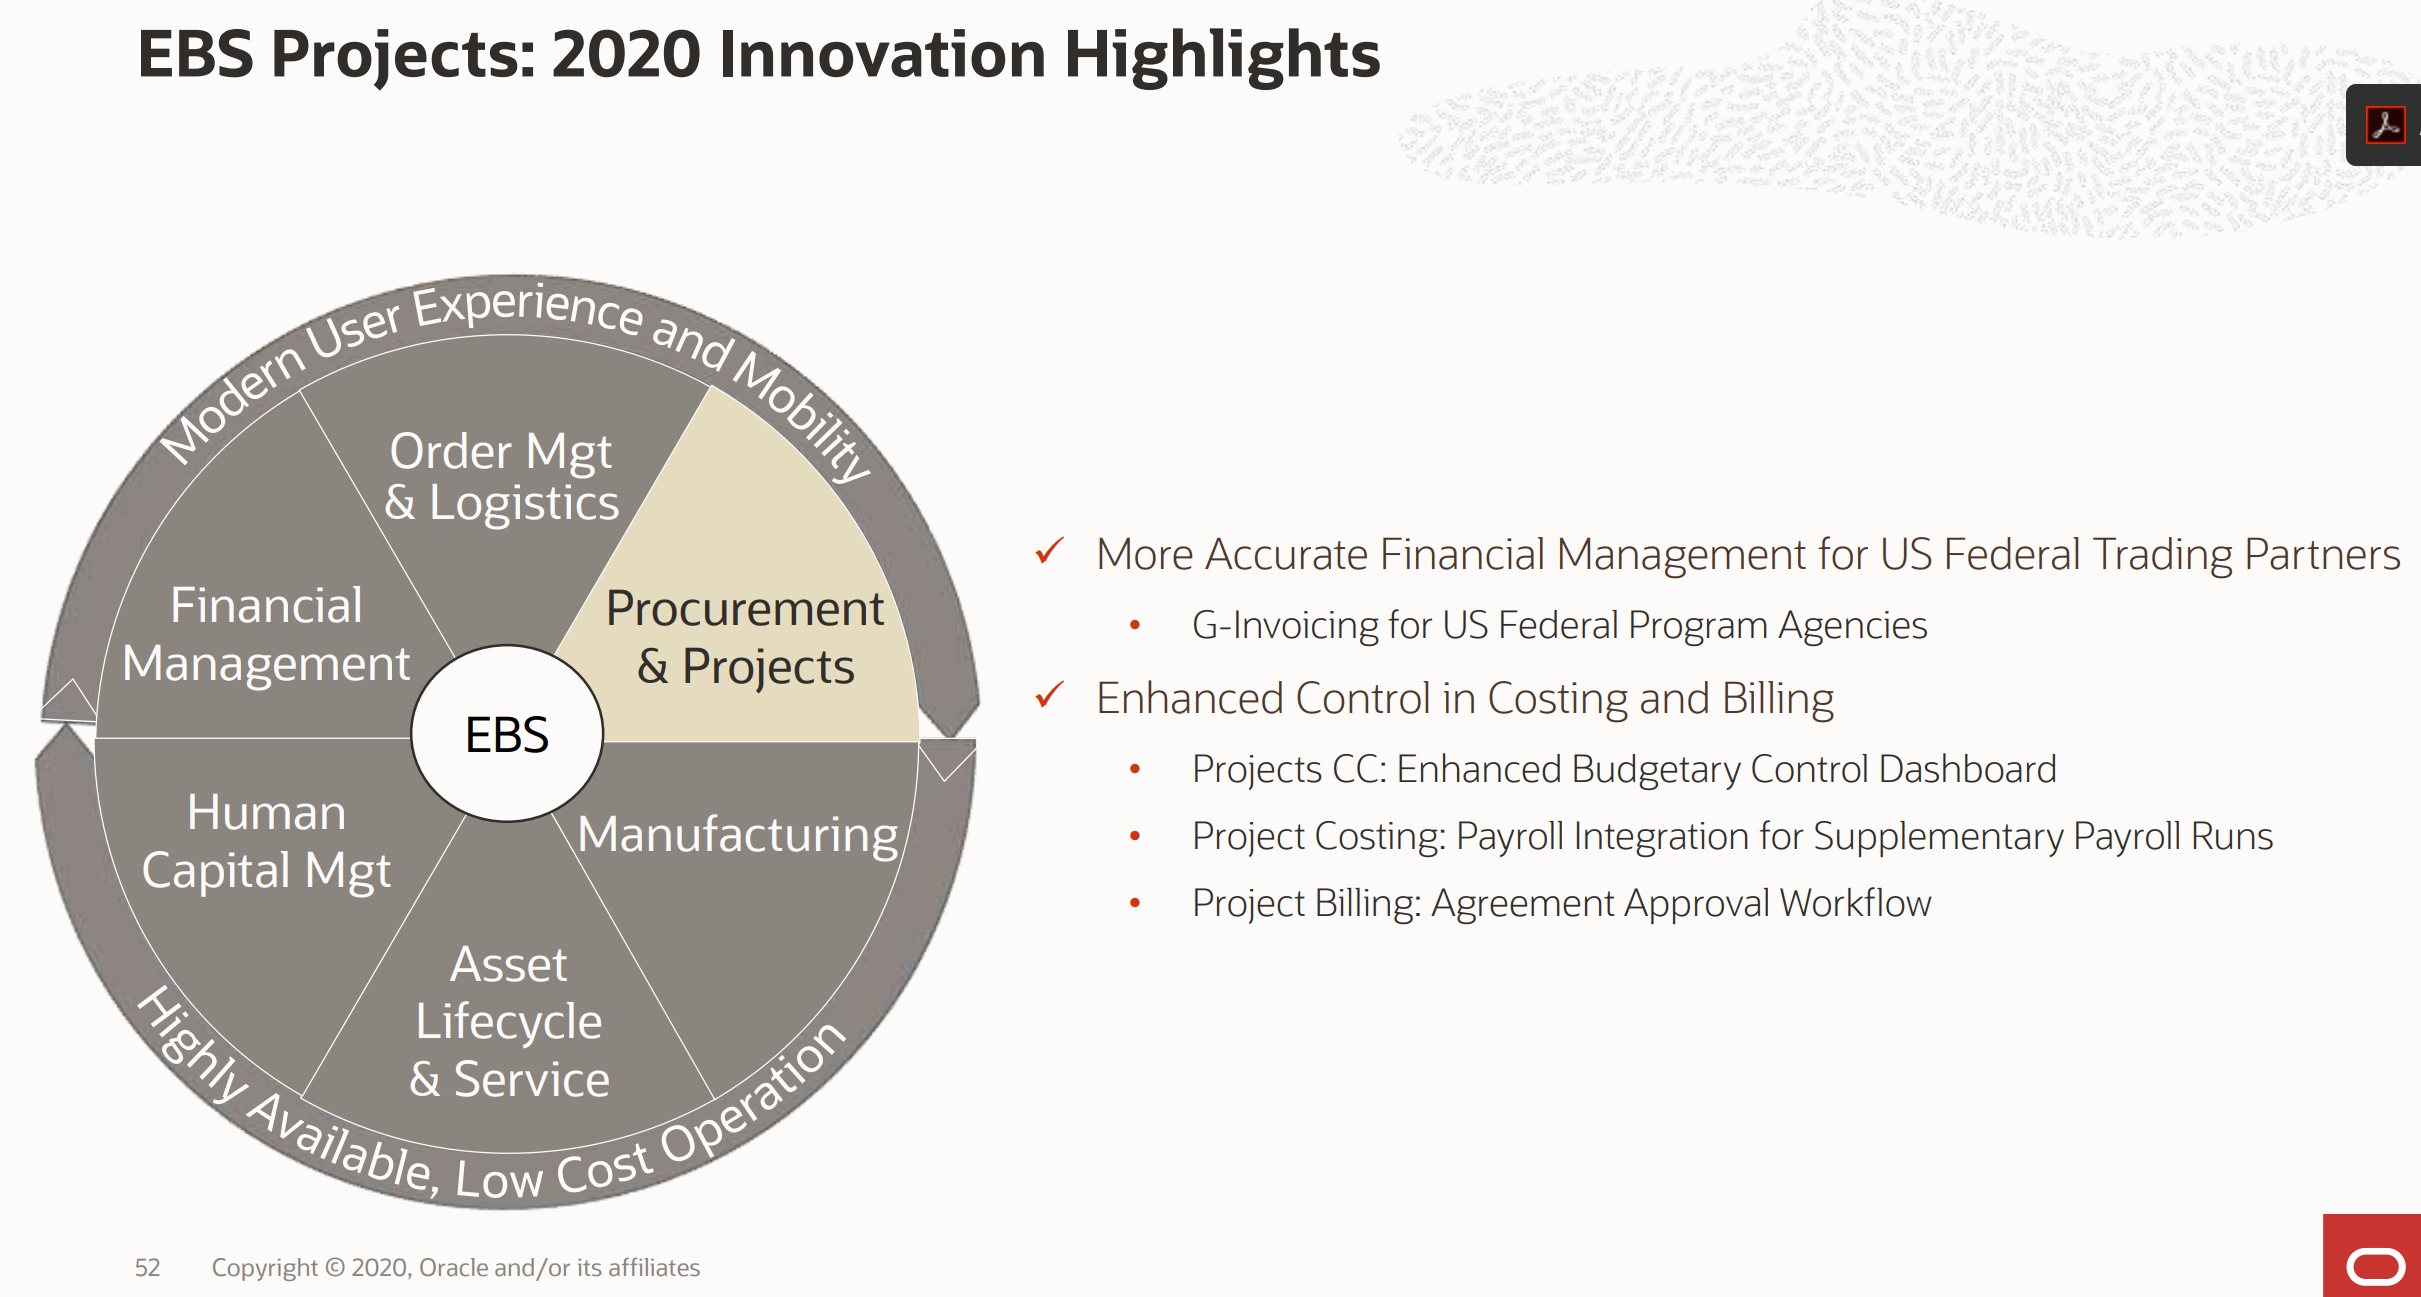 EBS Projects 2020 Innovation Highlights